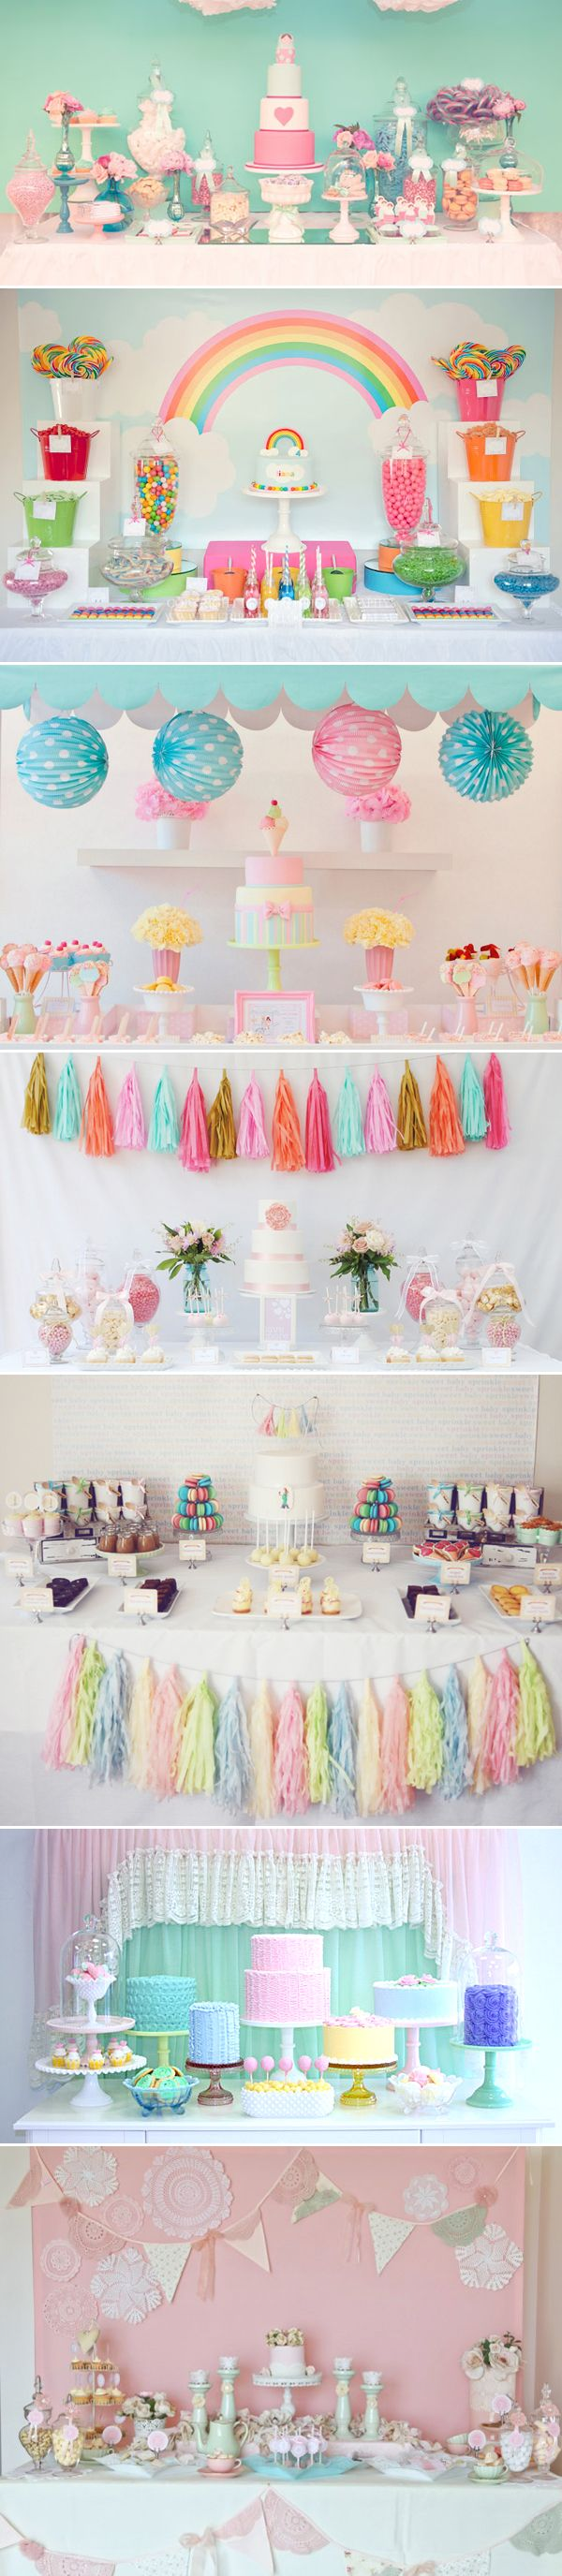 Hermosas mesas de Candy Bar decoradas en colores pasteles. ¡Totalmente inspiradoras!